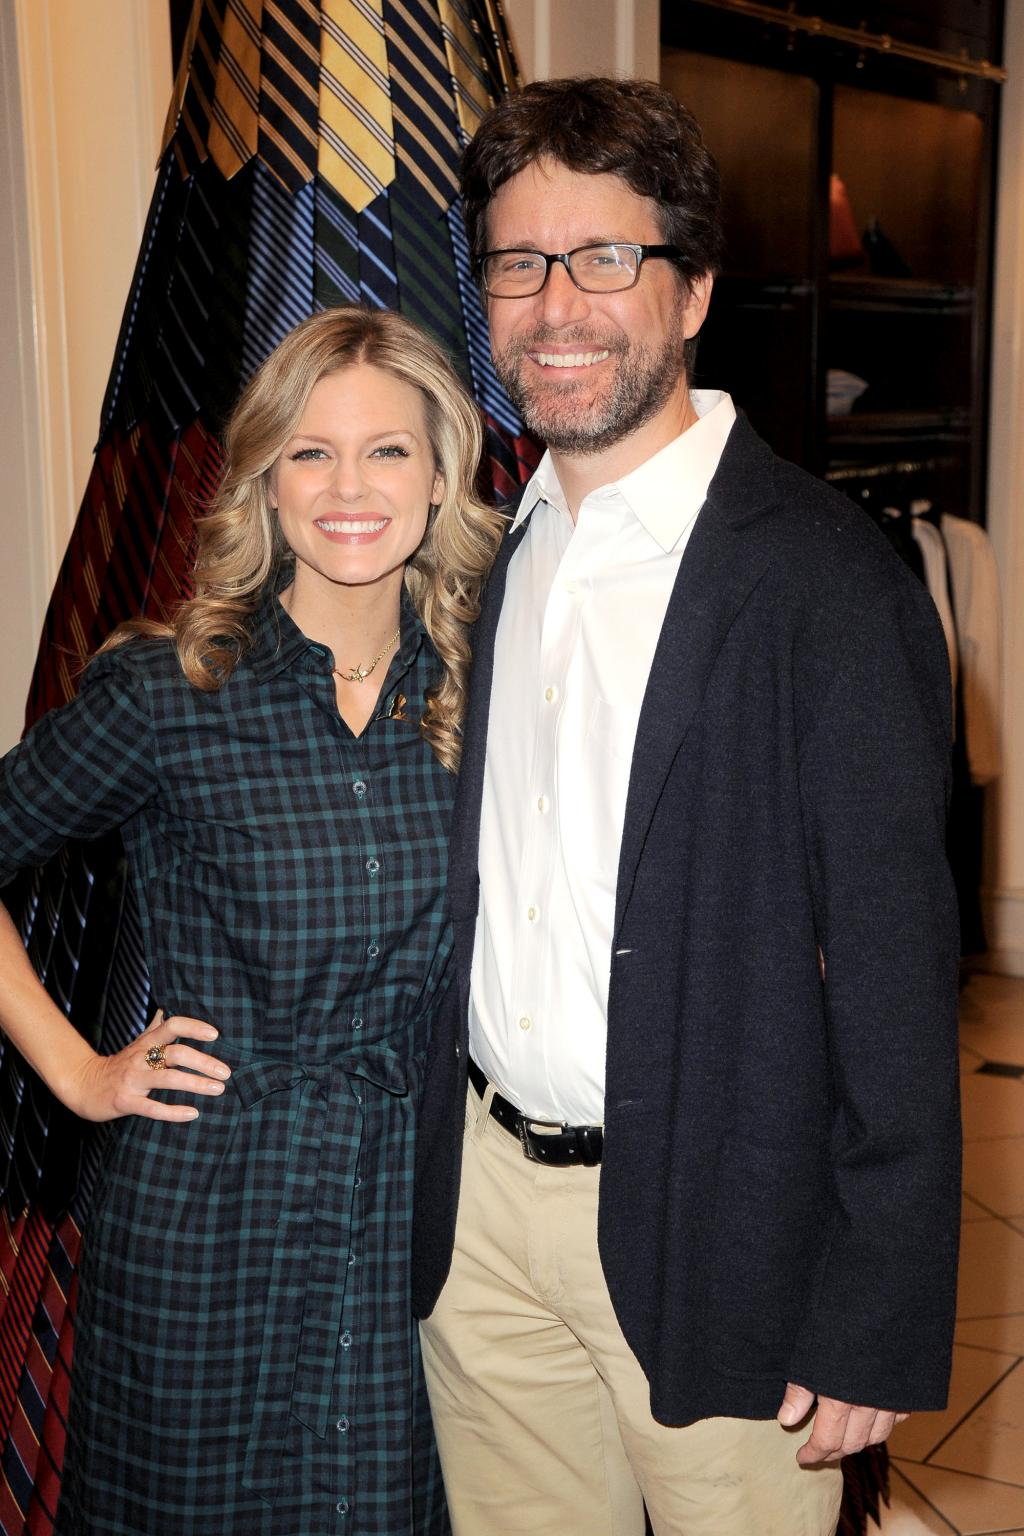 Fresh Off the Boat Actress Chelsey Crisp and Writer-Producer Rhett Reese Are Married!